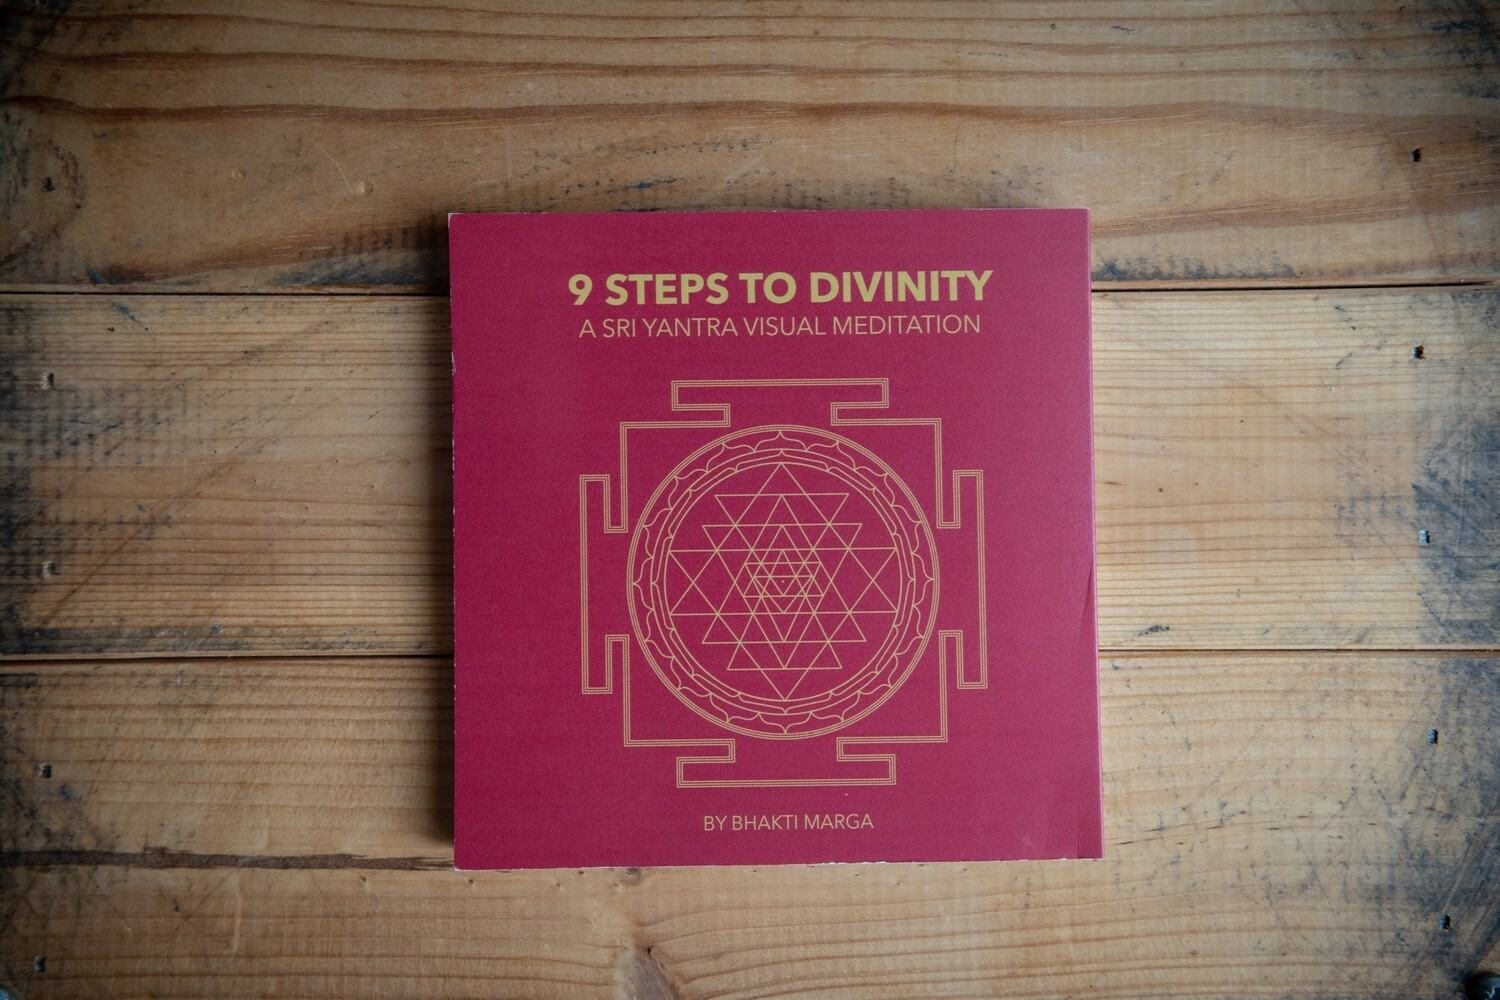 Sri Yantra Visual Meditation. 9 Steps to Divinity. Booklet